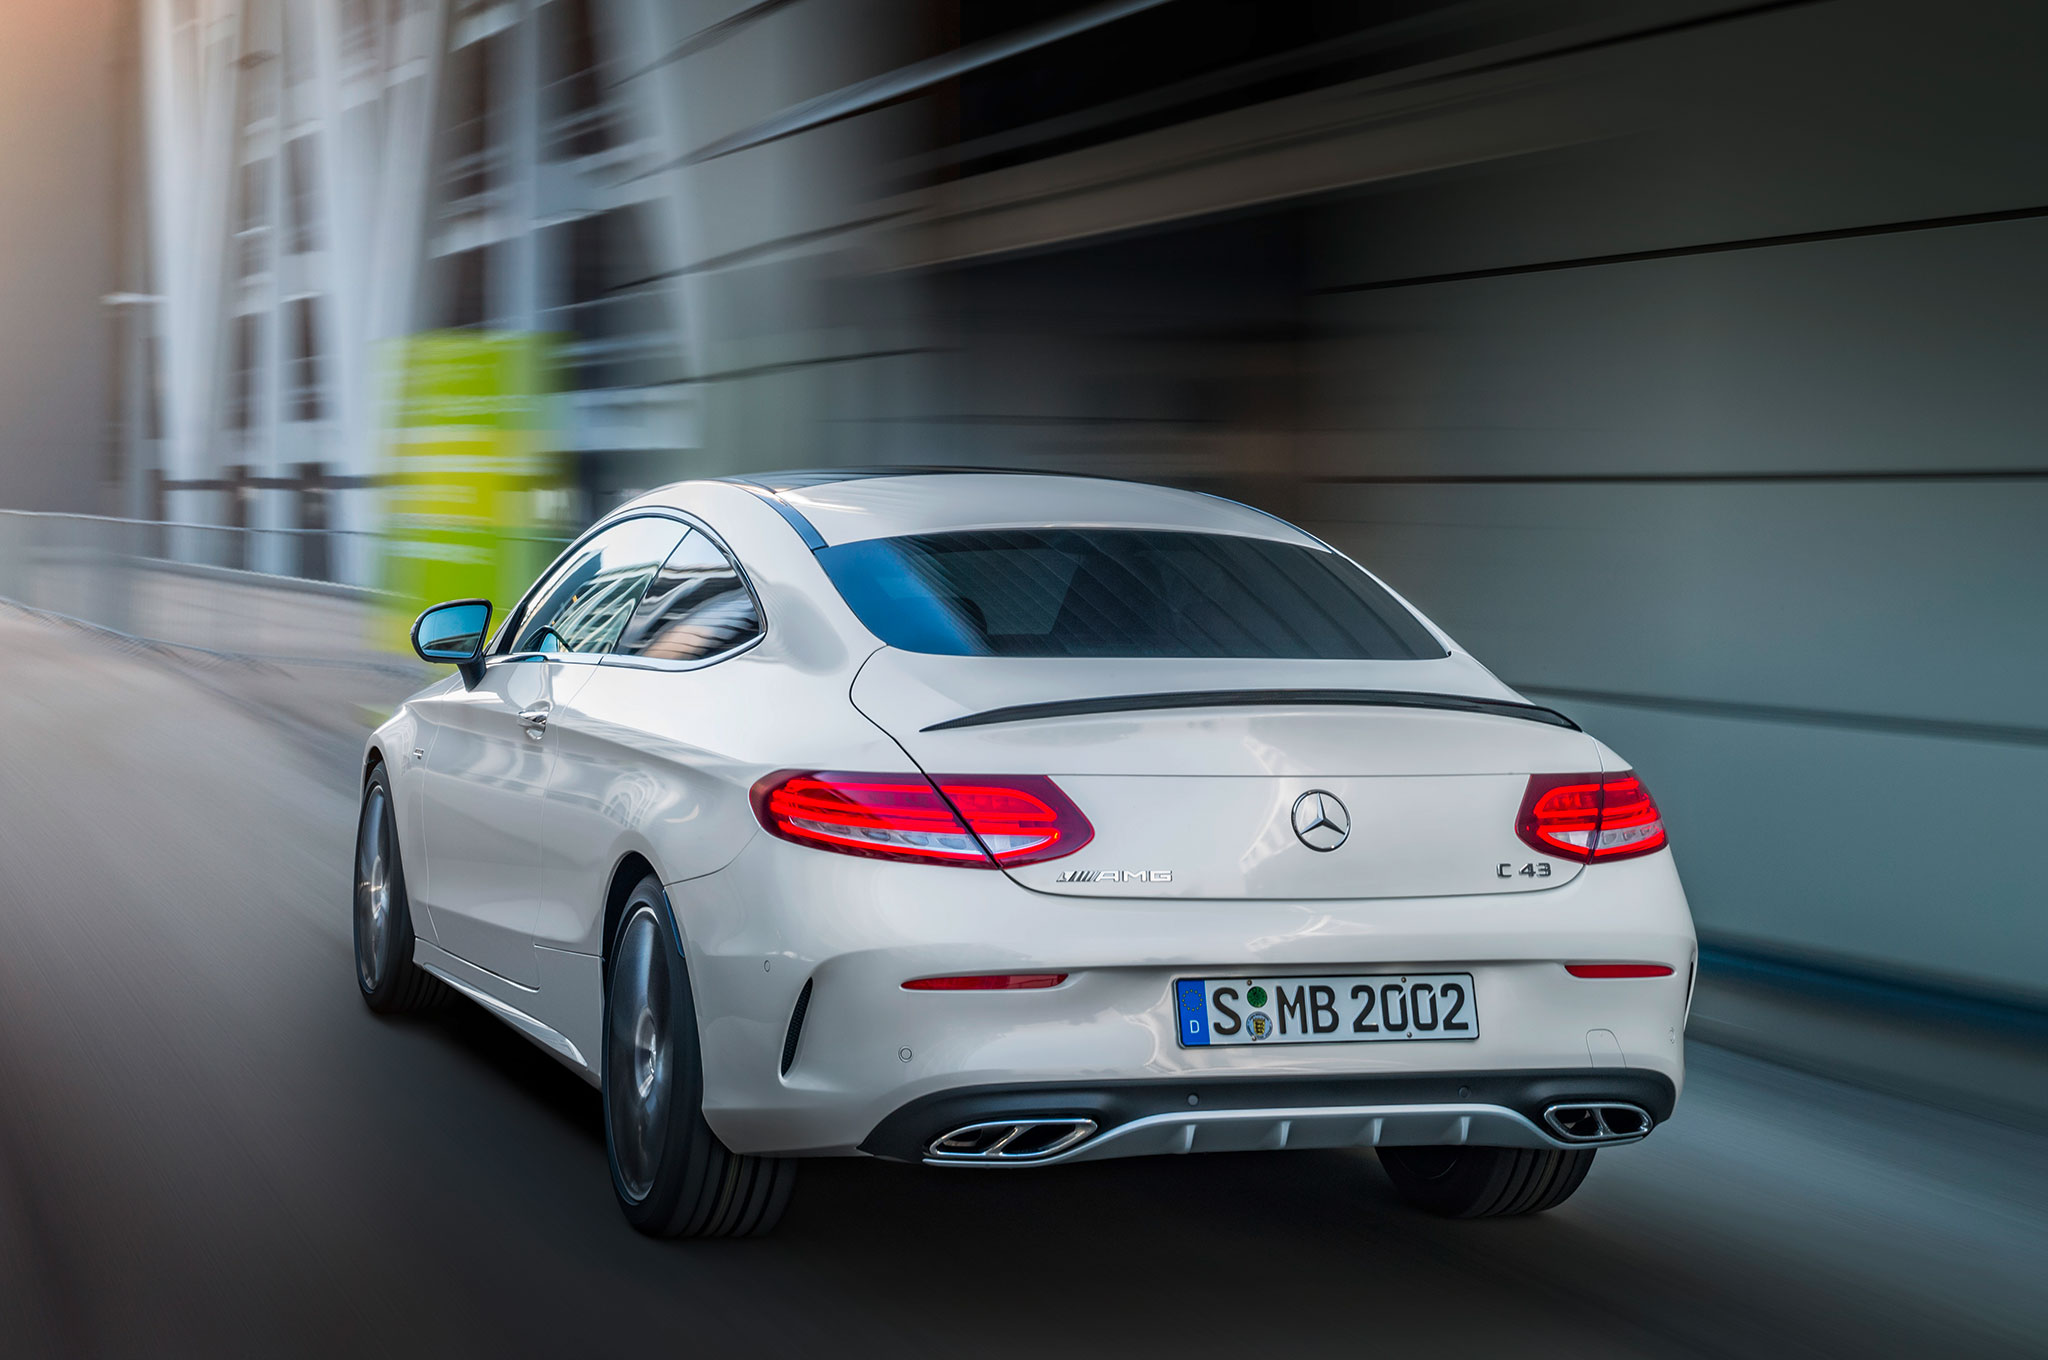 http://st.automobilemag.com/uploads/sites/11/2016/02/2017-Mercedes-AMG-C43-Coupe-rear-three-quarter-in-motion-02.jpg